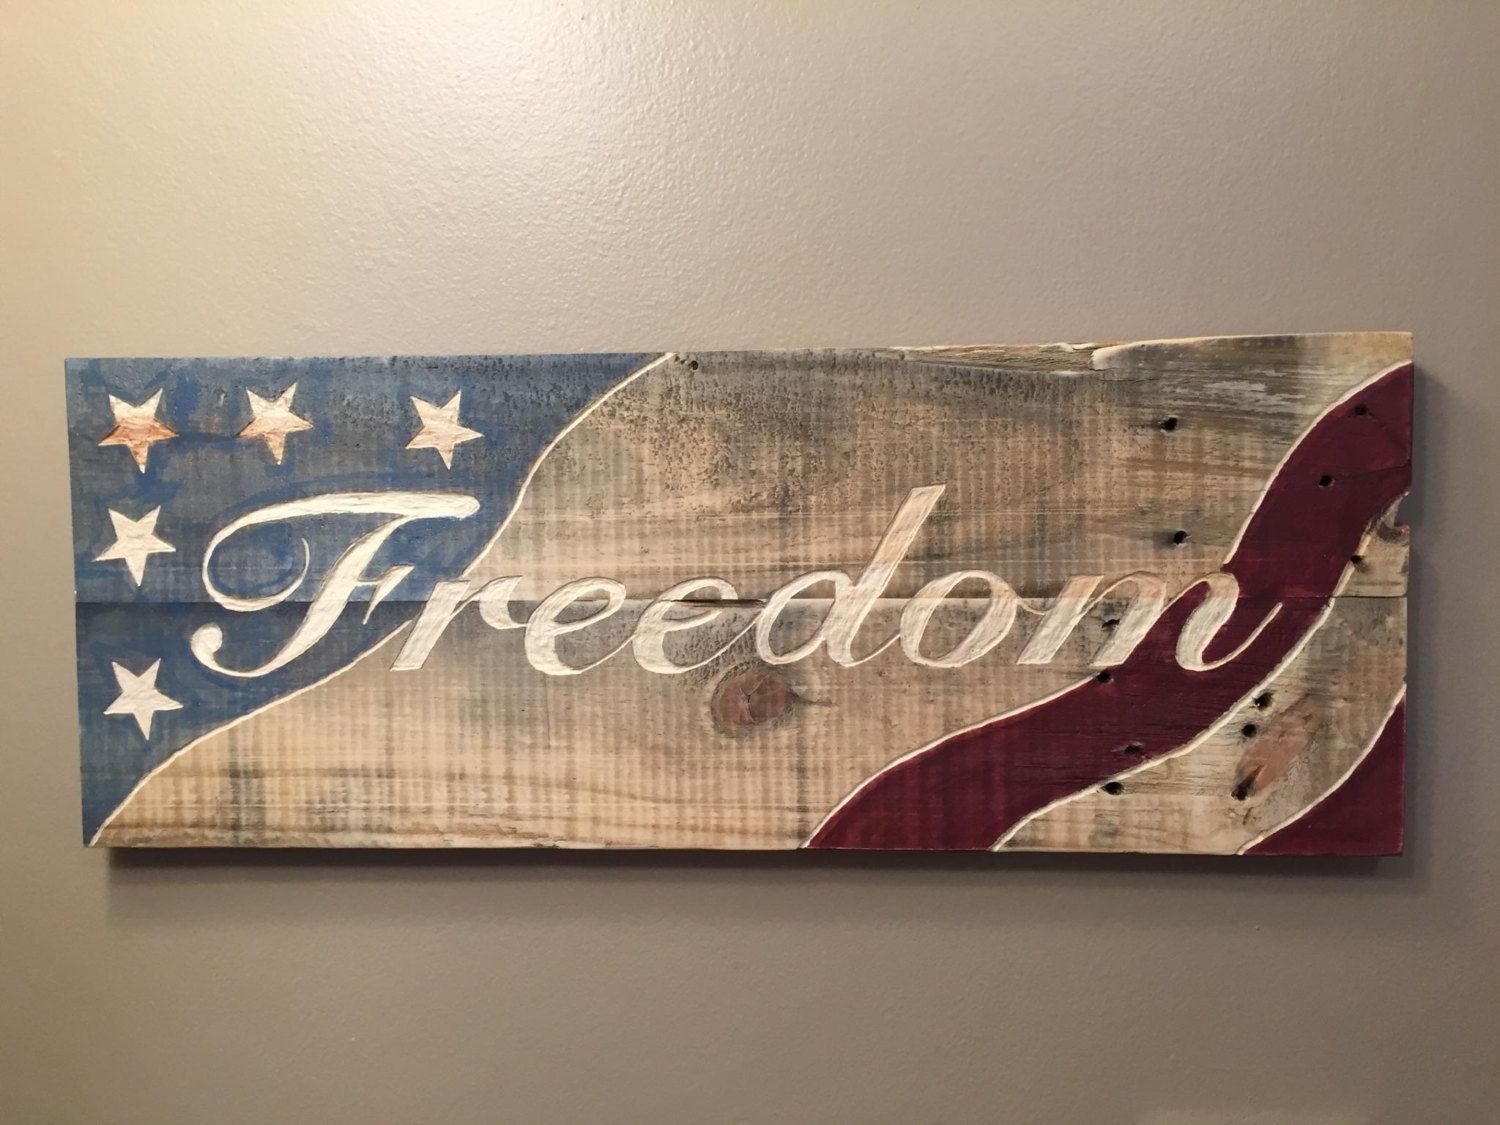 This listing is for a custom designed wooden sign engraved with the